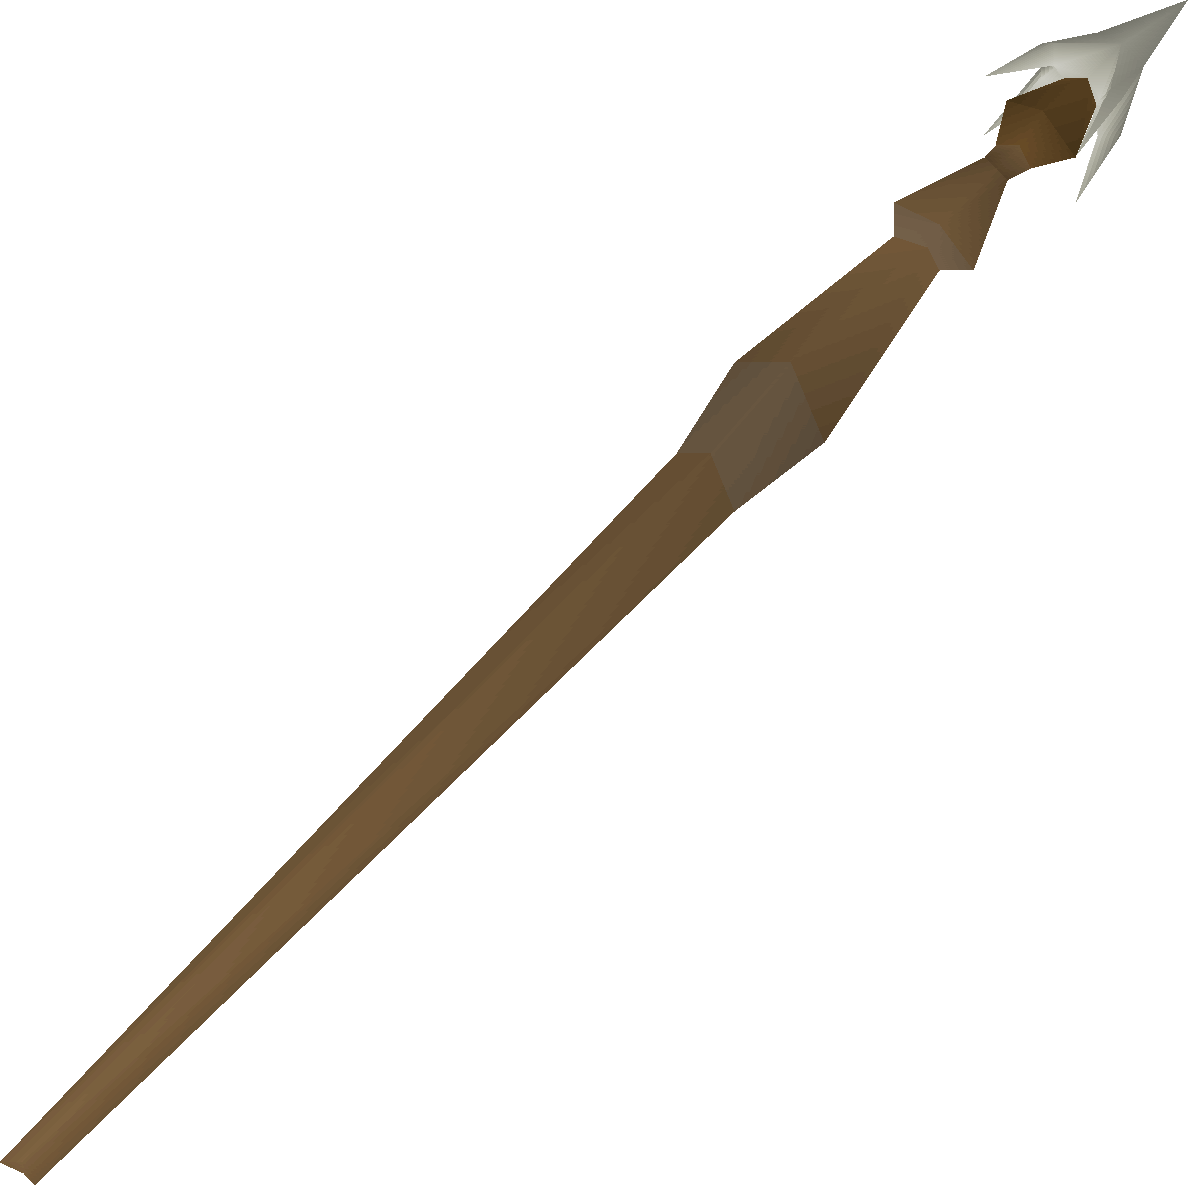 Barb-tail harpoon